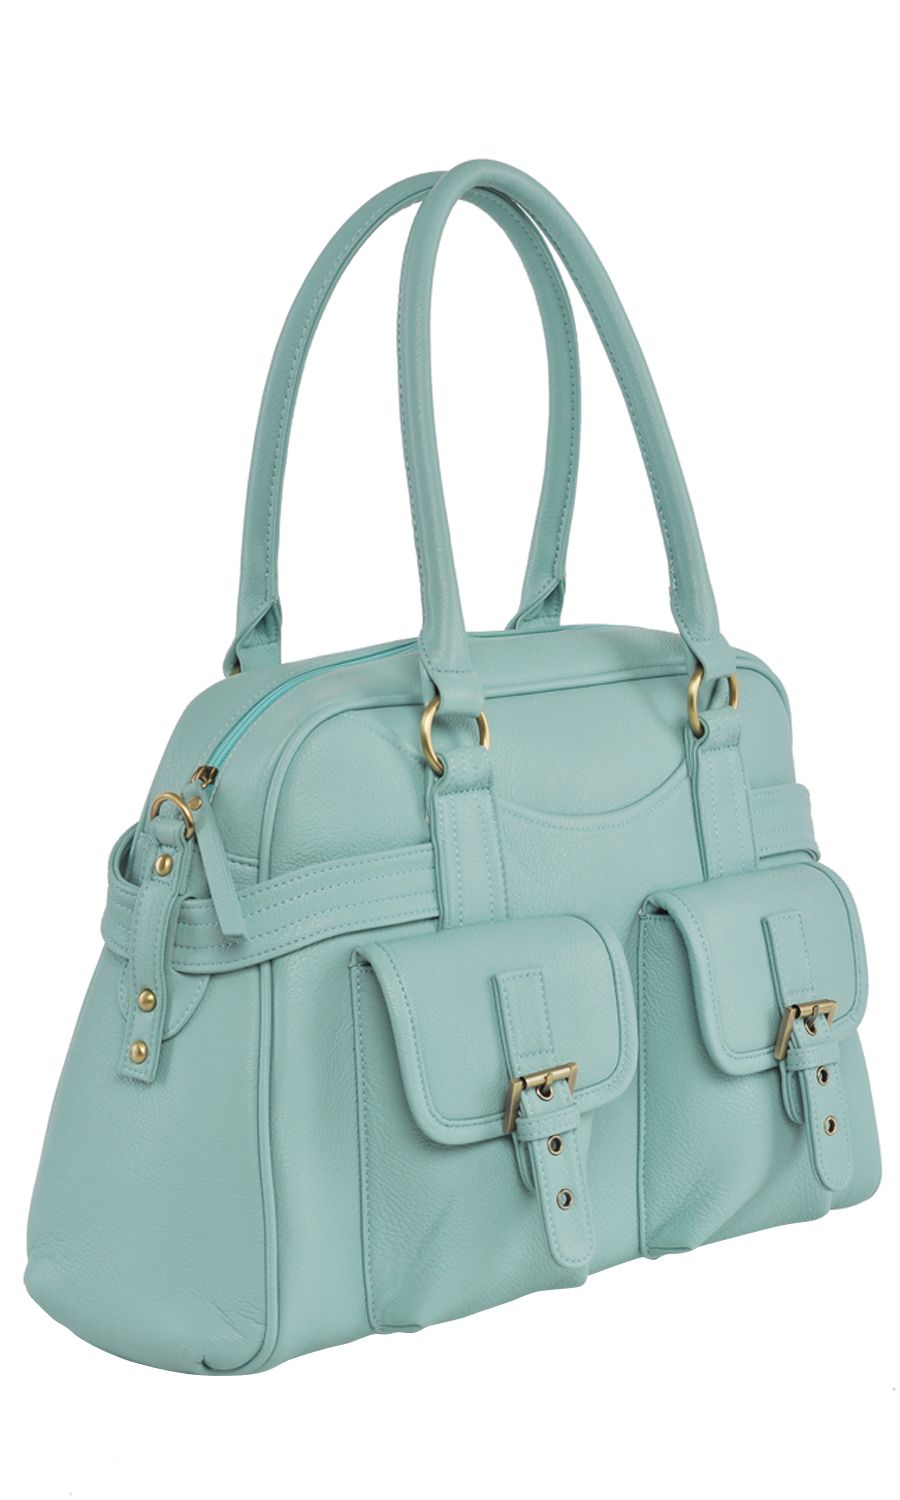 e2ba8b8021fc5b Jo Totes Missy Mint Fresh and fashionable, Missy has space for your camera  gear, laptop and everyday handbag items. $119,